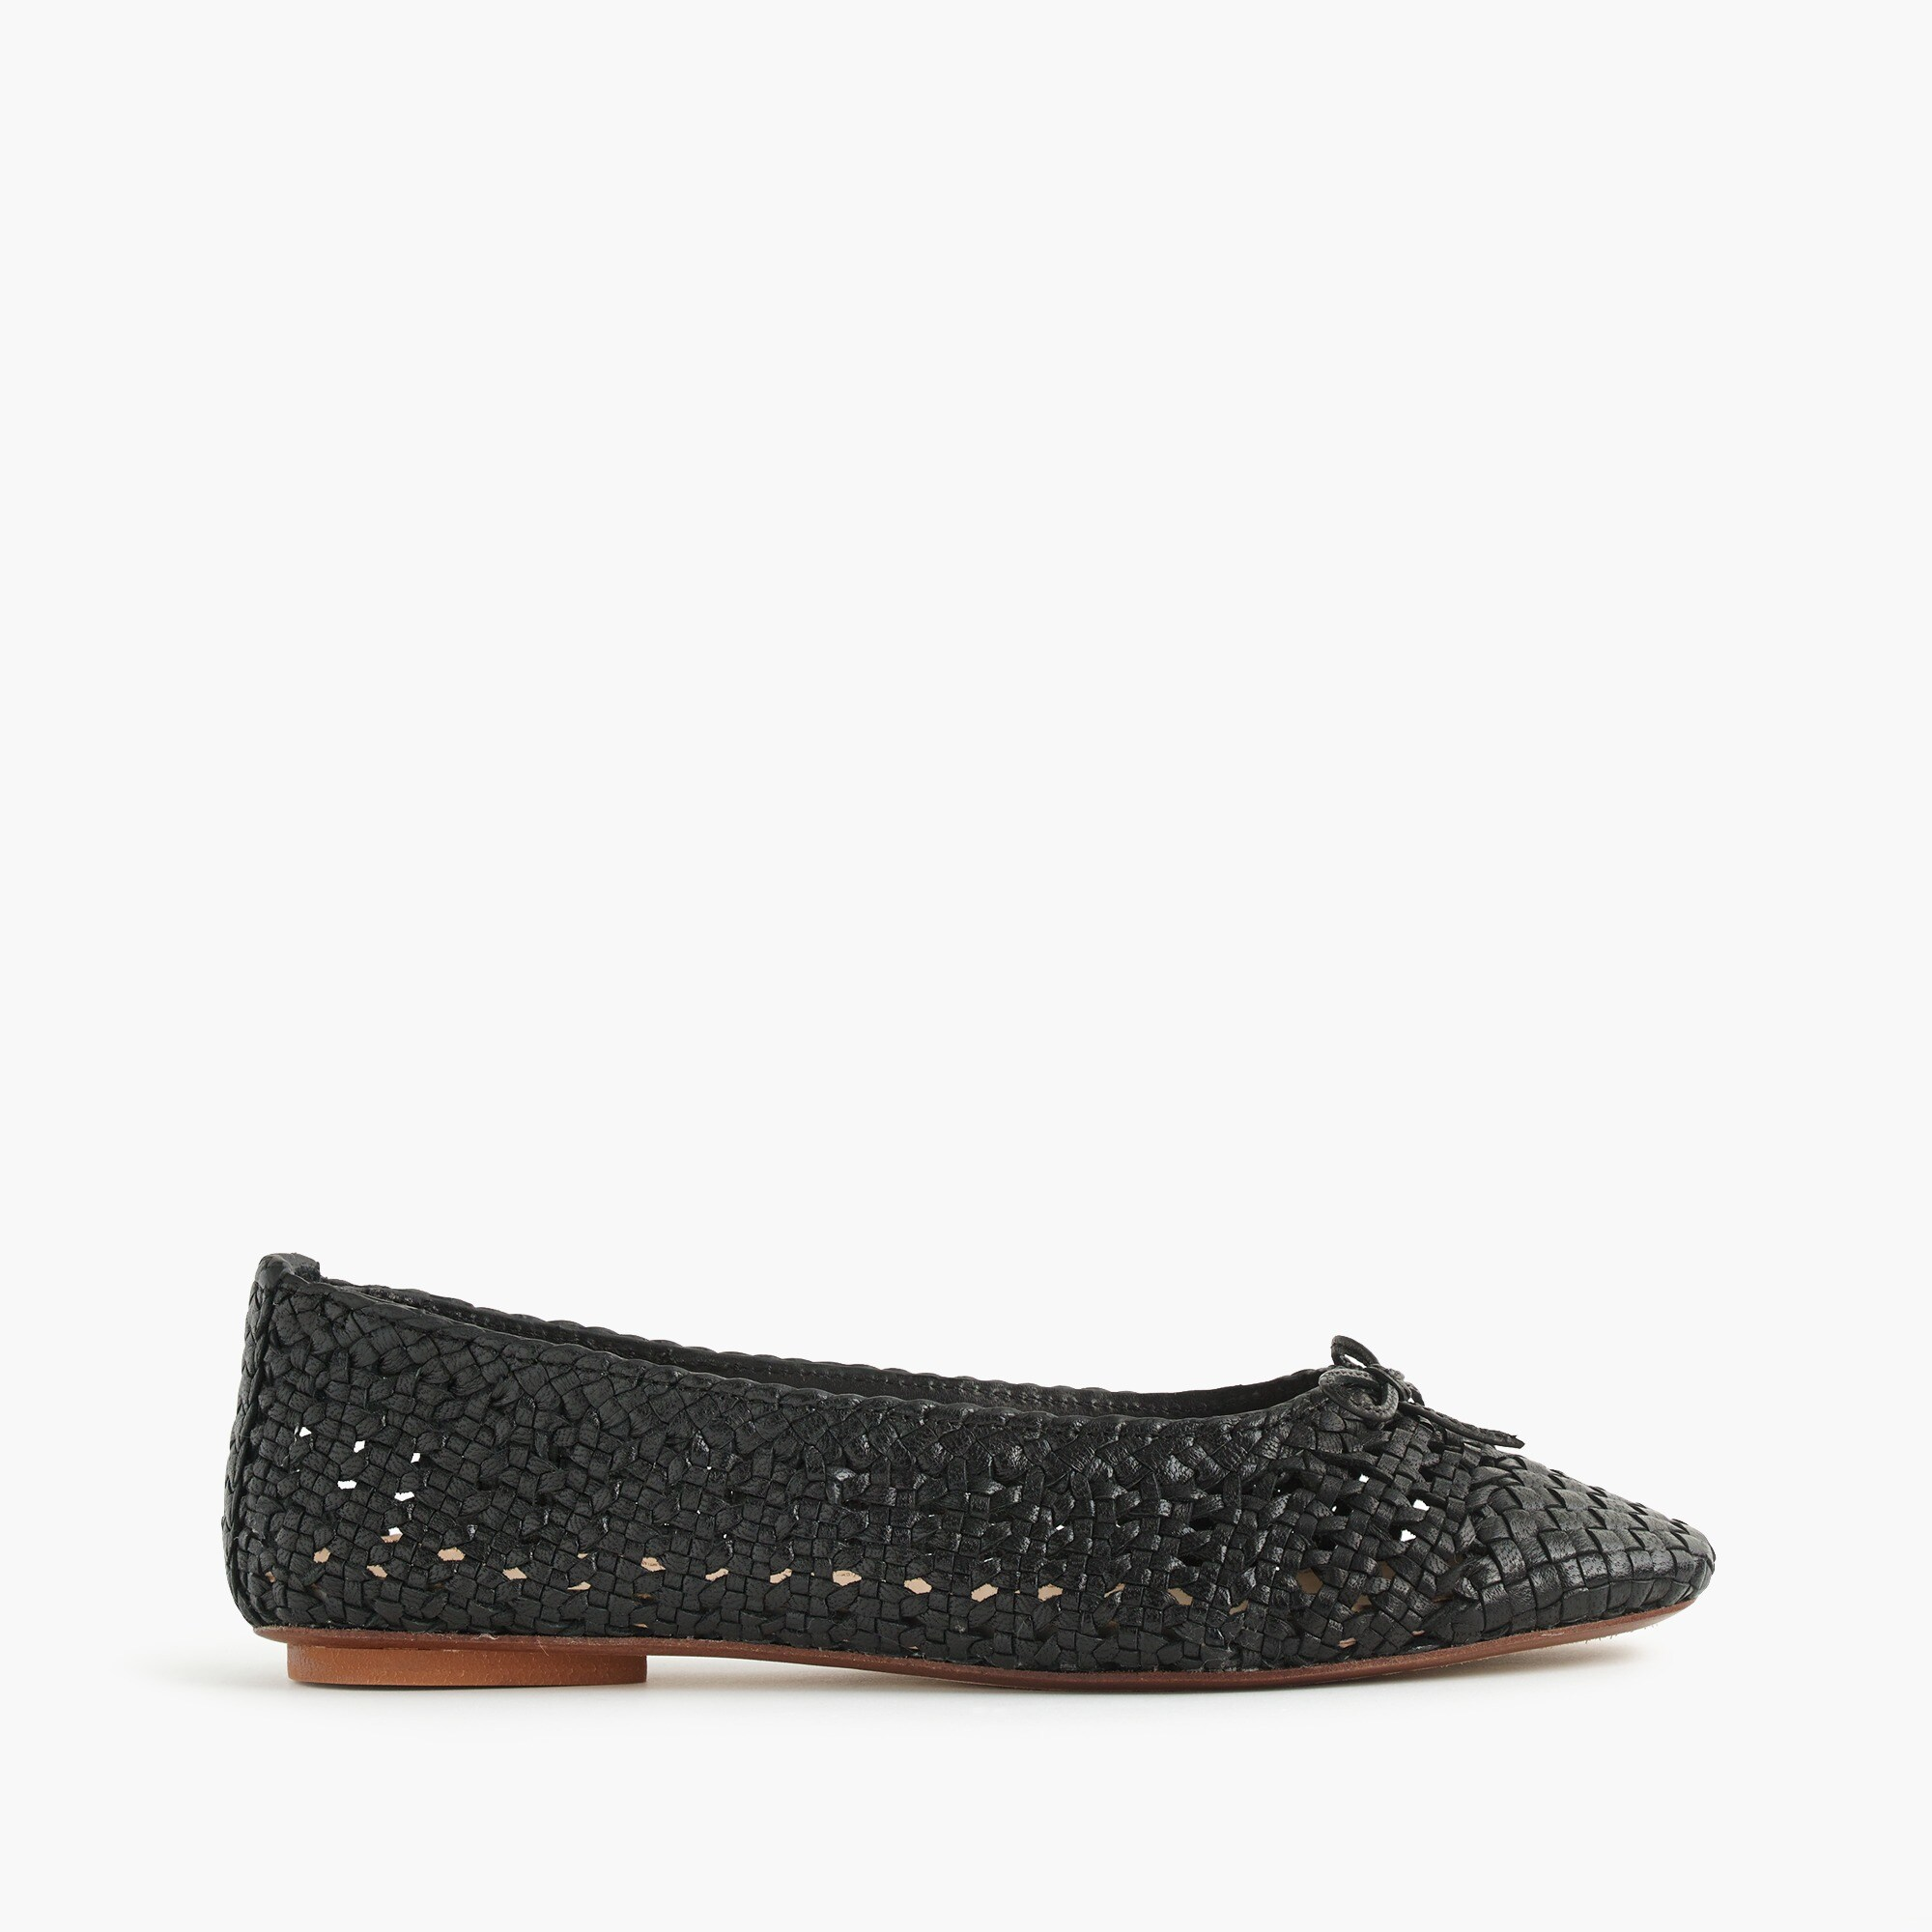 Dragon Diffusion™ for J.Crew woven ballet flats women j.crew in good company c